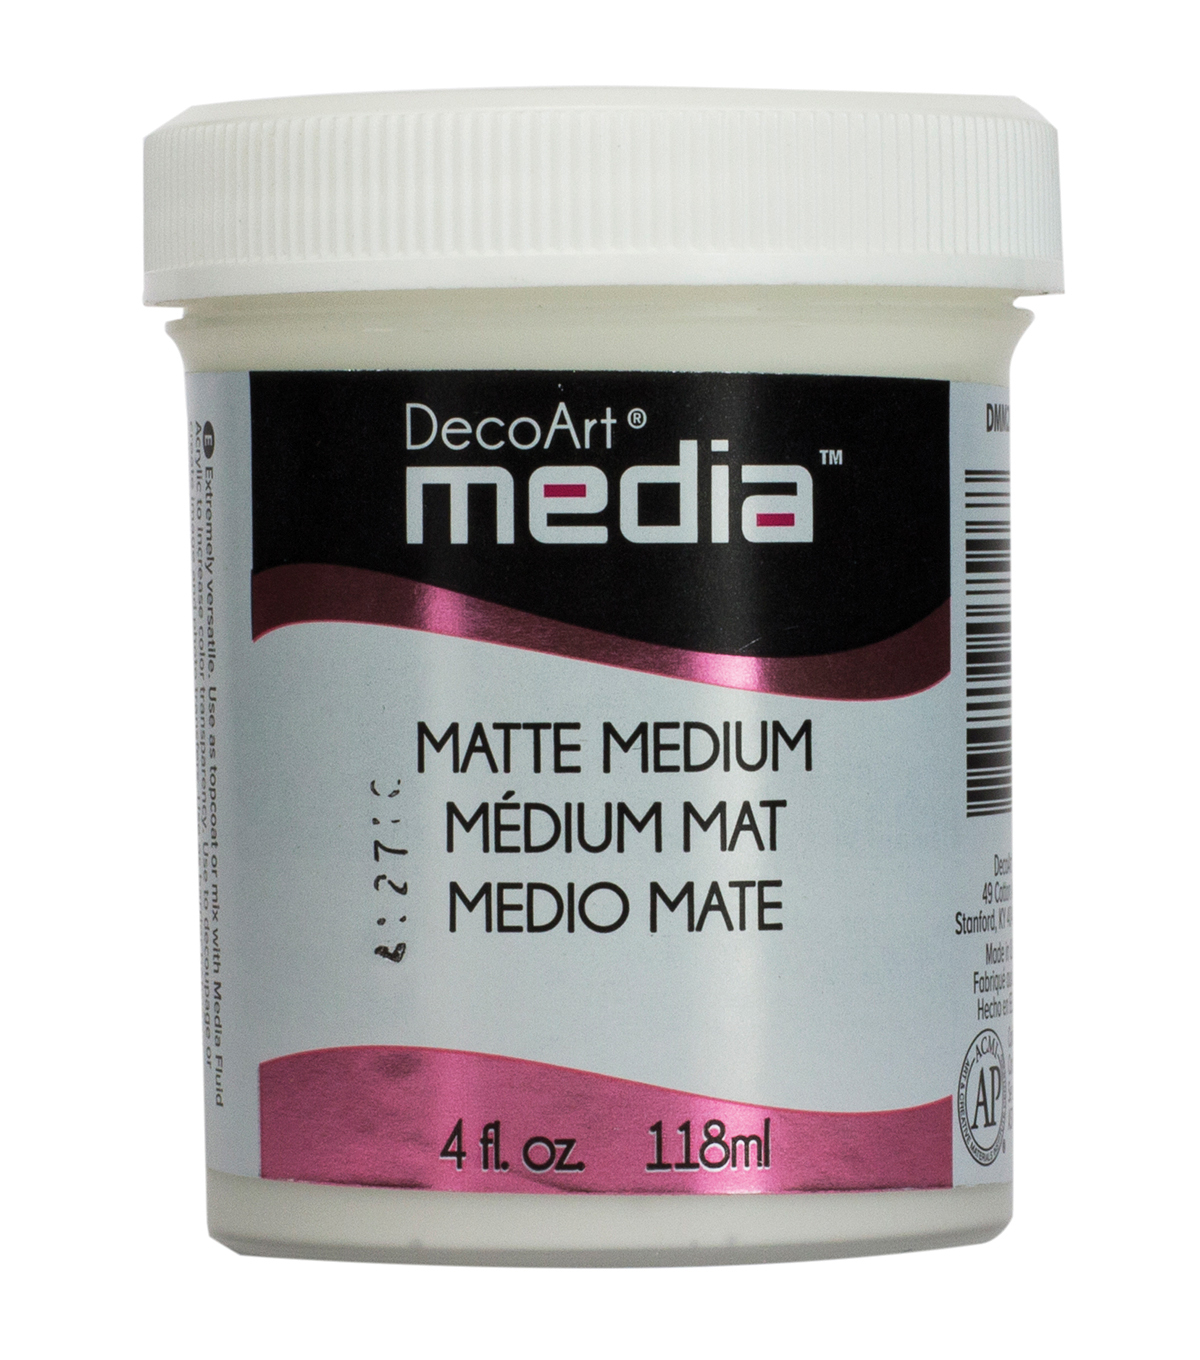 DecoArt Media Medium 4oz-Matte